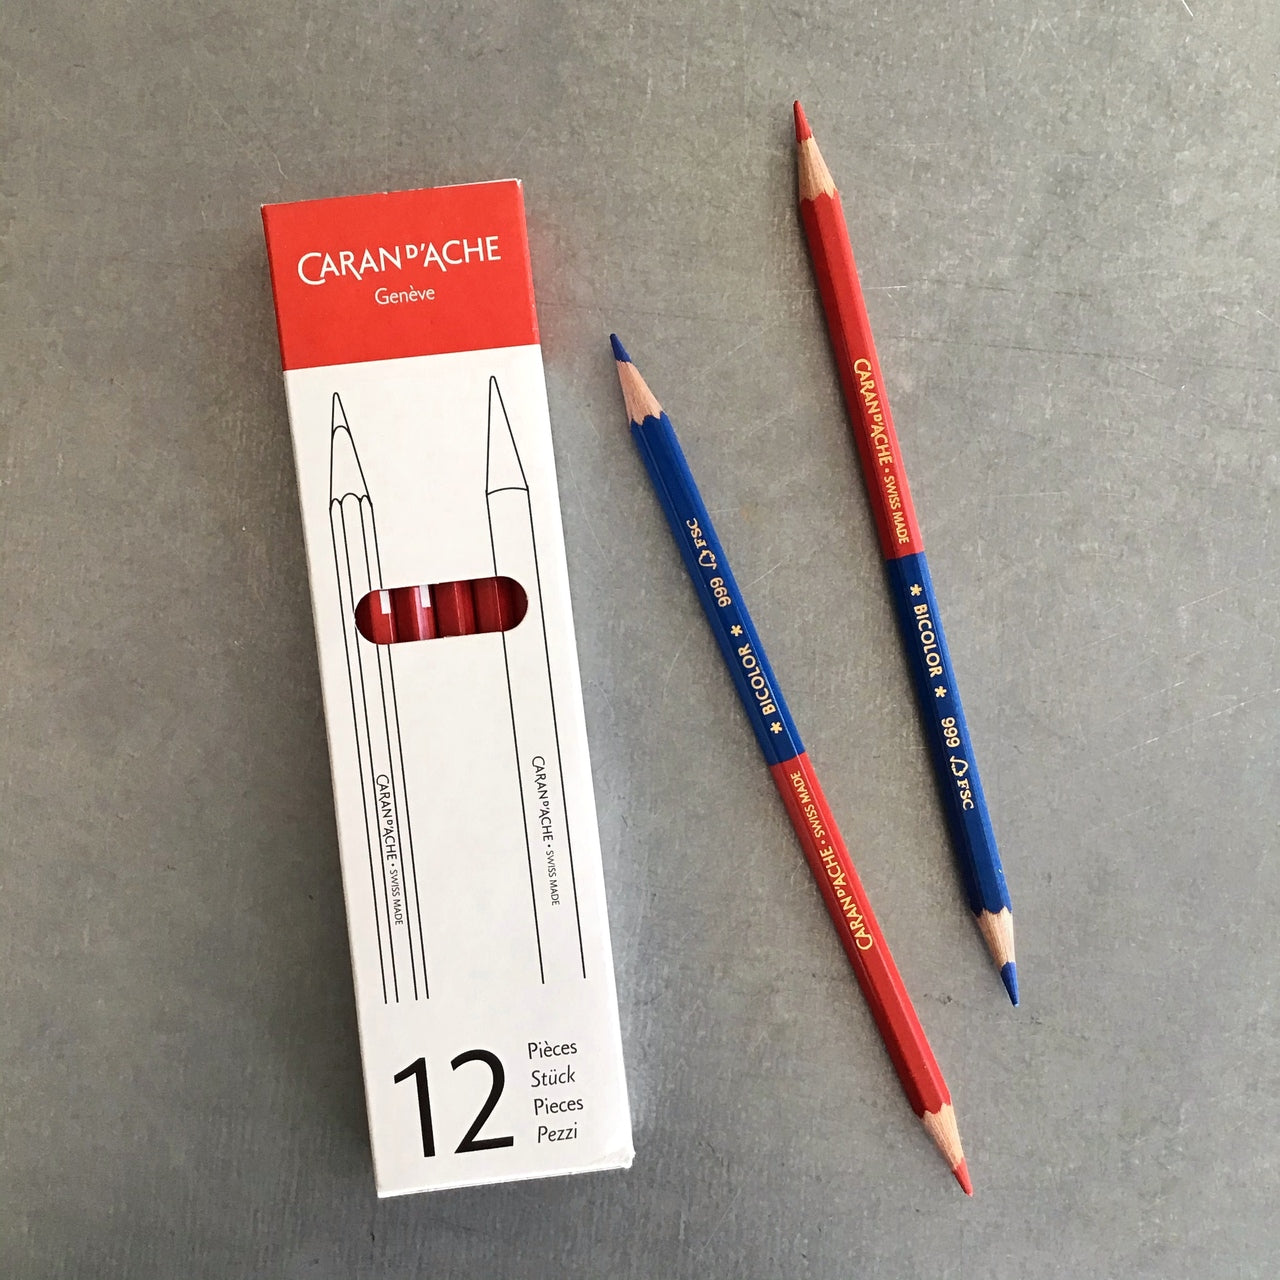 The Caran d'Ache 999 Bicolor pencil is a high-quality classic!